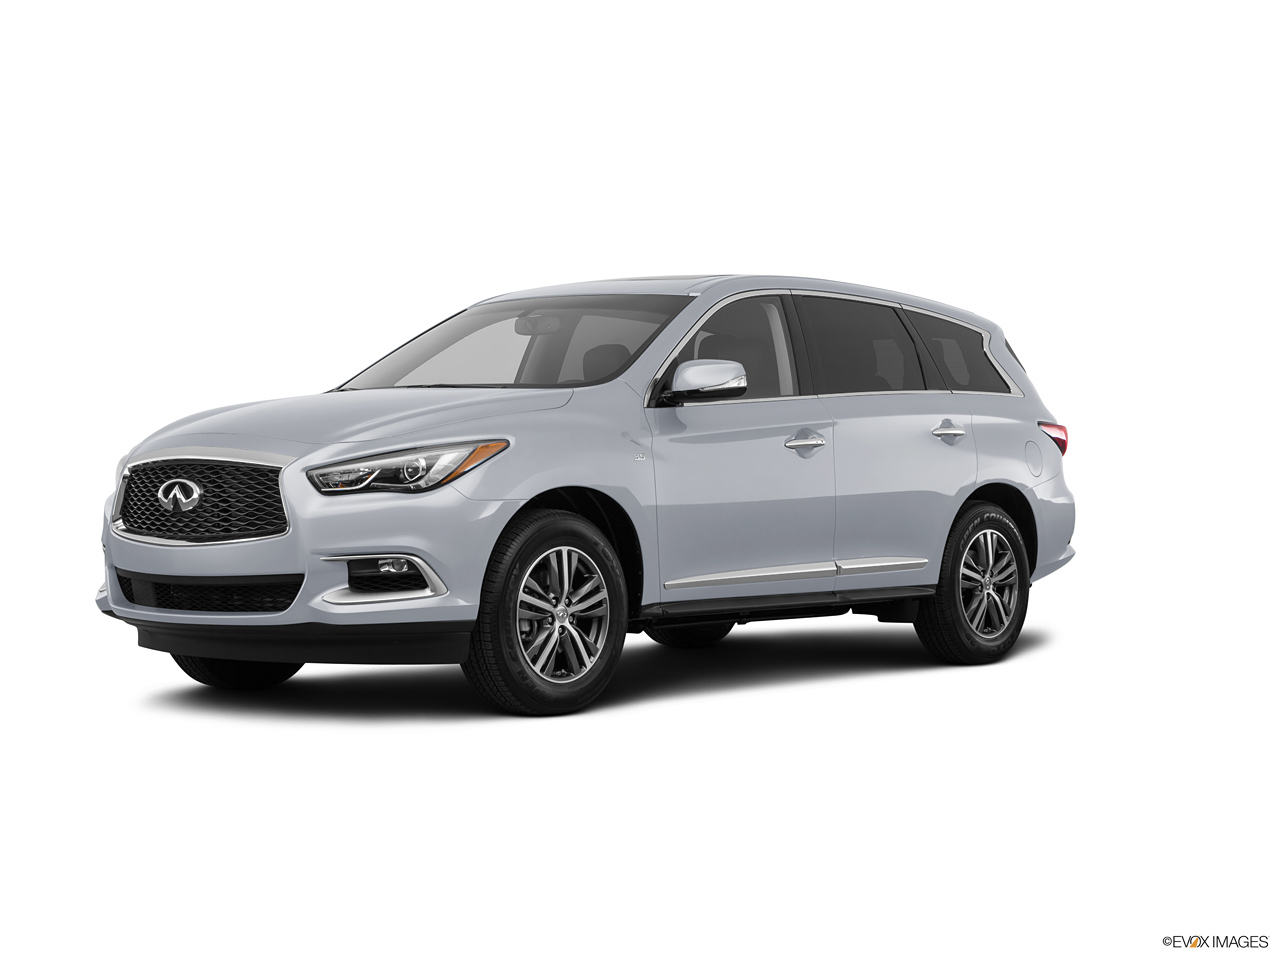 2017 infiniti qx60 length autos post for Infiniti qx60 vs honda pilot